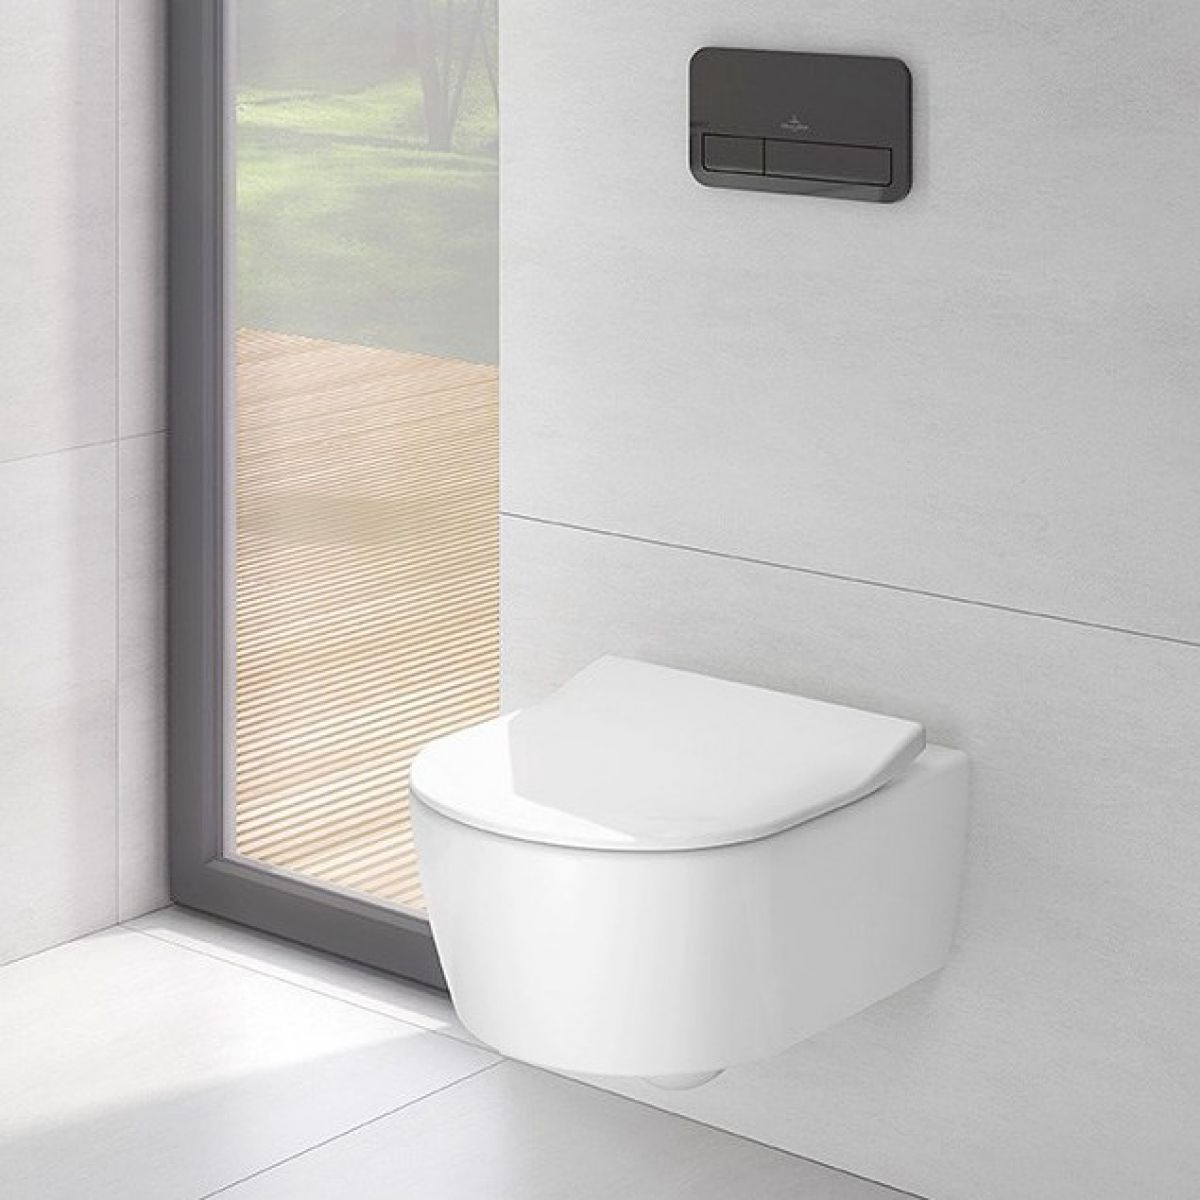 villeroy and boch avento directflush wall hung toilet uk bathrooms. Black Bedroom Furniture Sets. Home Design Ideas